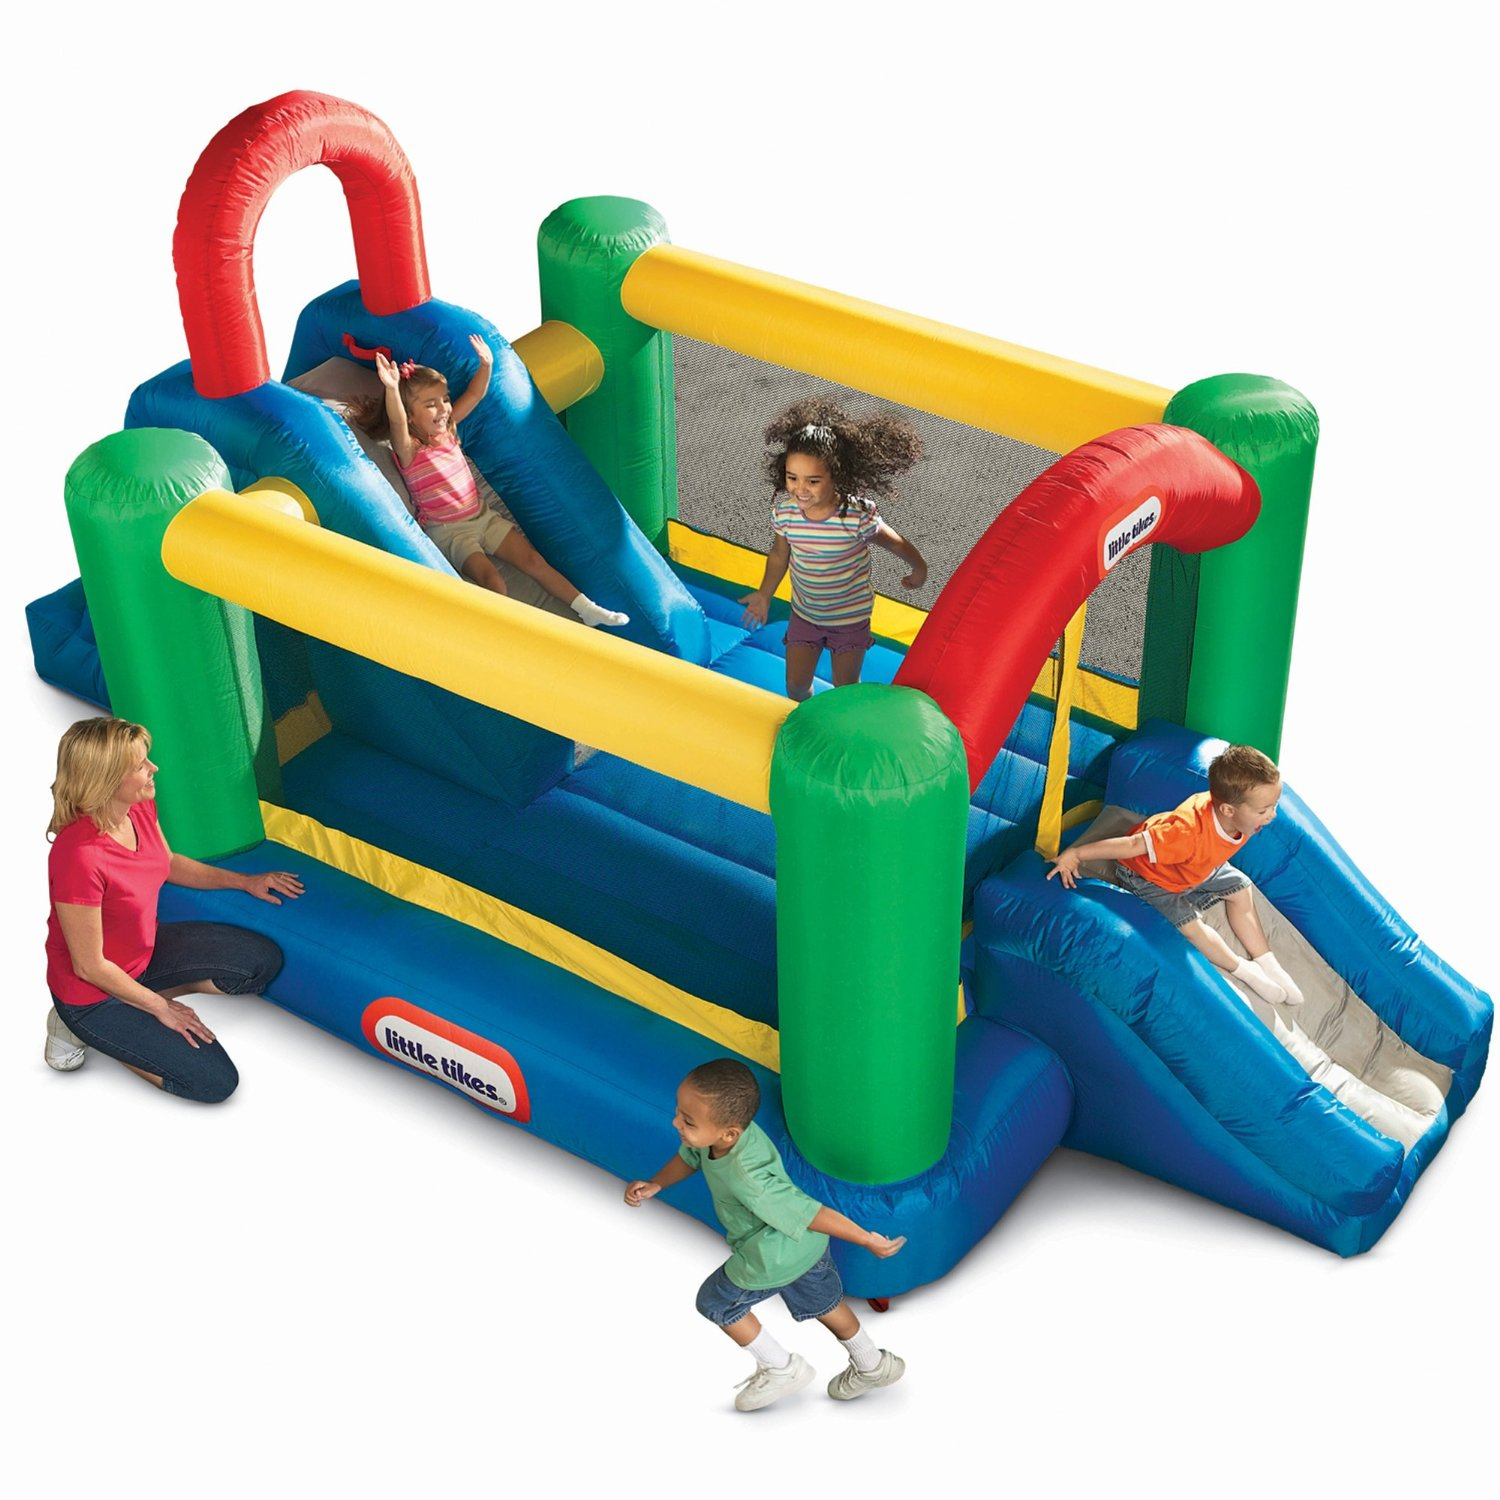 Grandpa Johns toddler party rentals